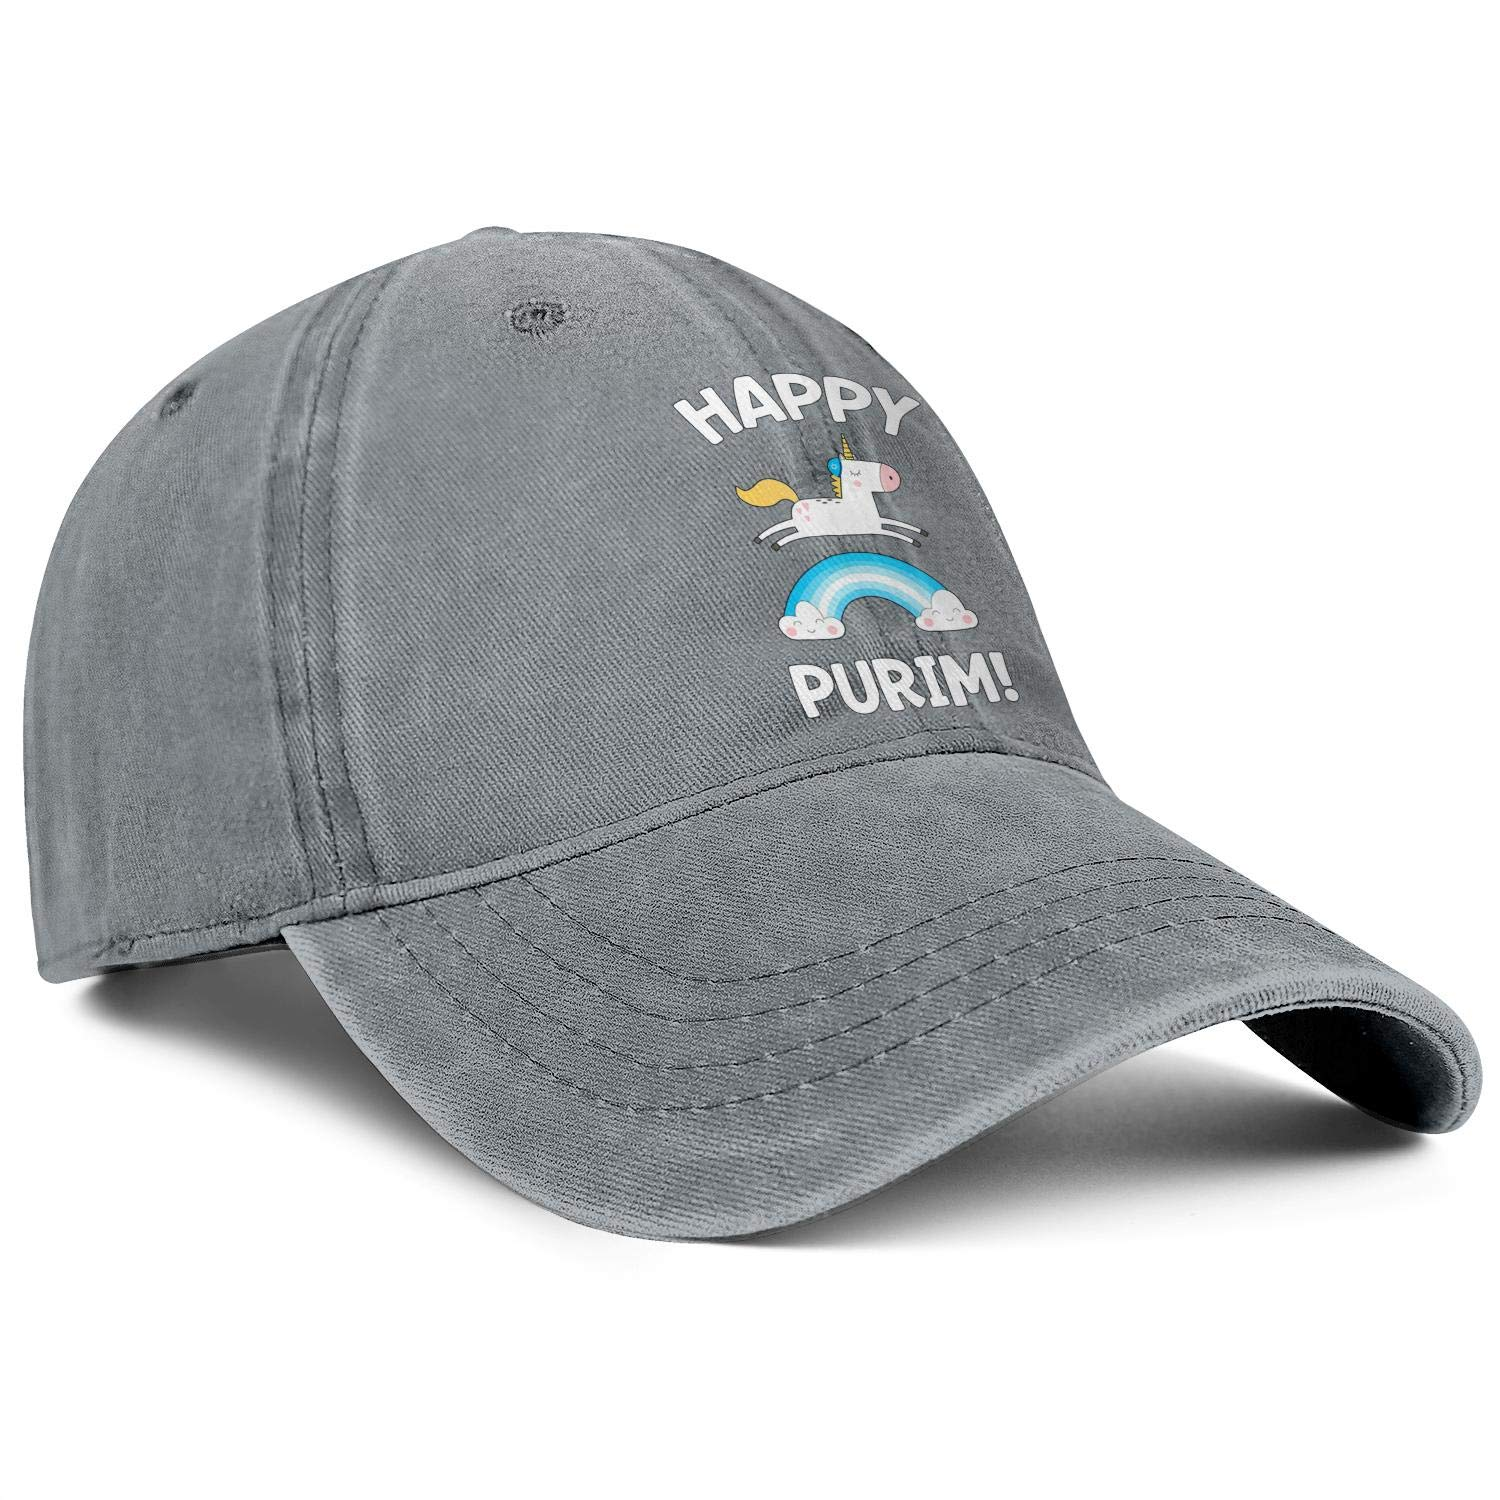 Happy Purim Funny Unicorn Costume Rainbow Gift Unisex Baseball Cap Fitted Sun Caps Adjustable Trucker Caps Dad-Hat